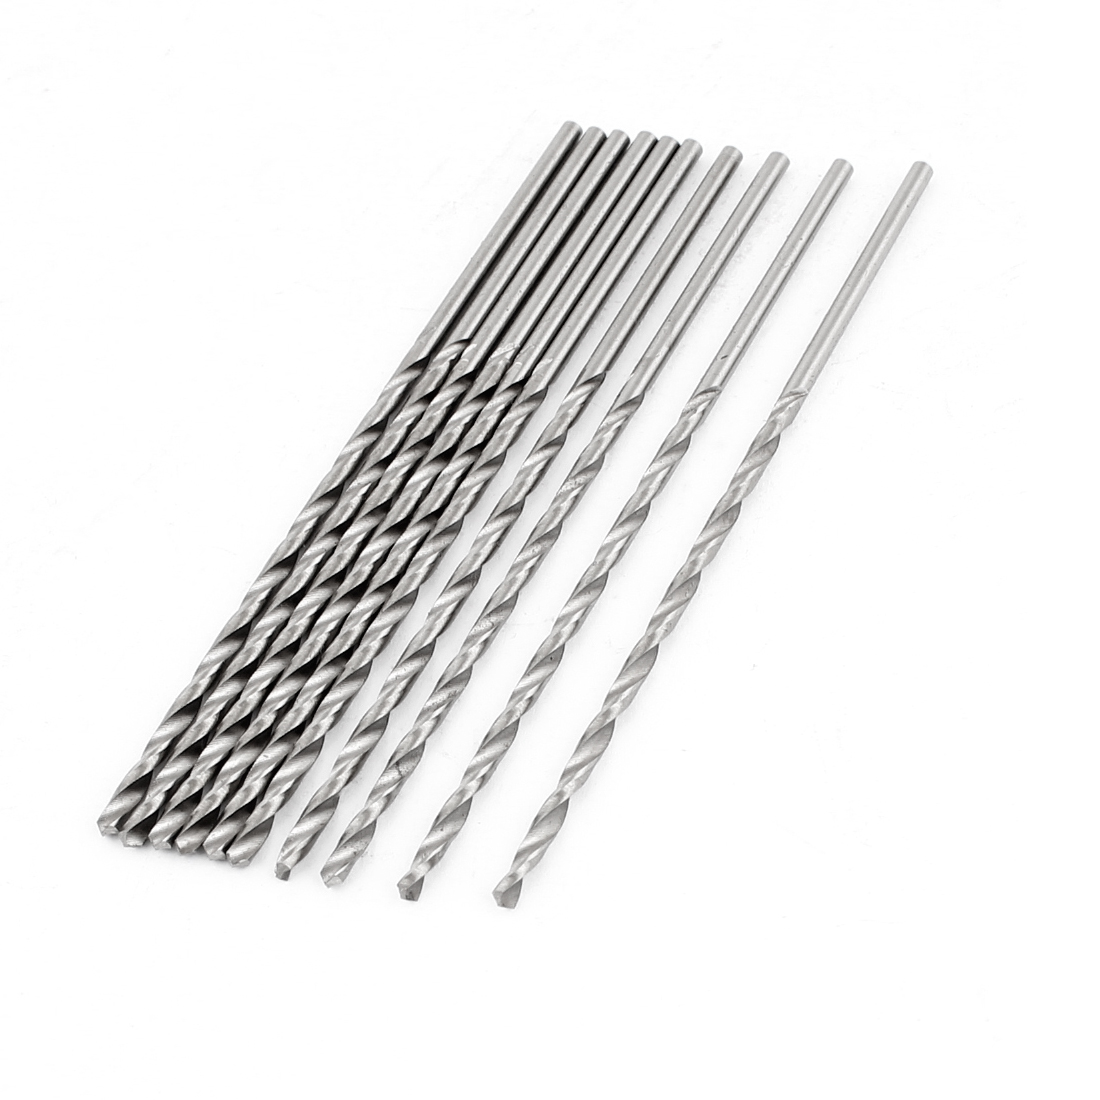 10pcs Straight Shaft 2.4mm High Speed Steel Twist Drilling Hole Iron Drill Bits